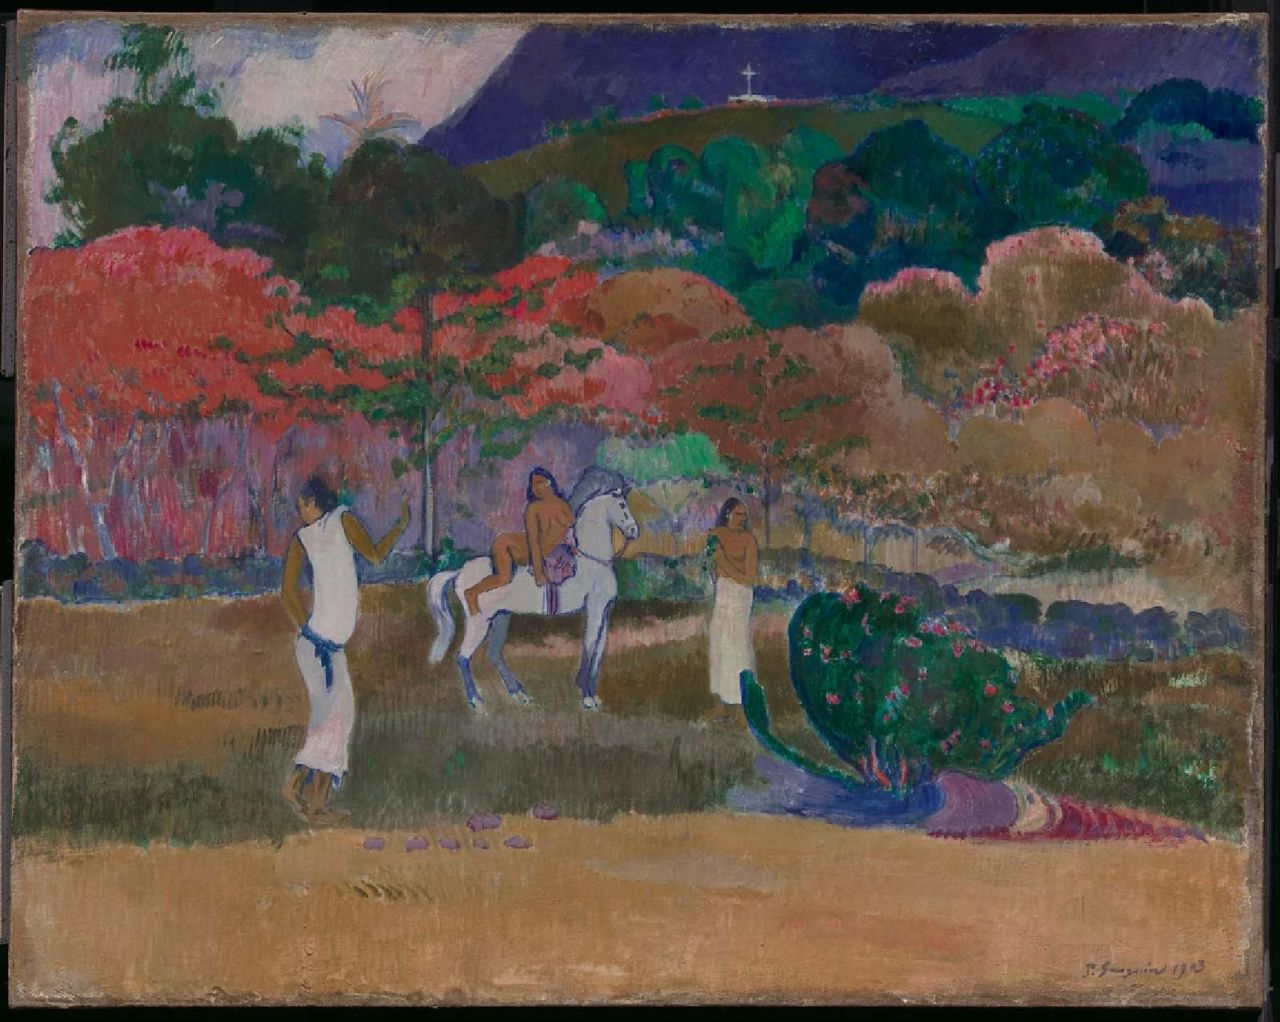 Paul Gauguin's Women and a White Horse (1903), part of the Museum of Fine Arts, Boston's collection